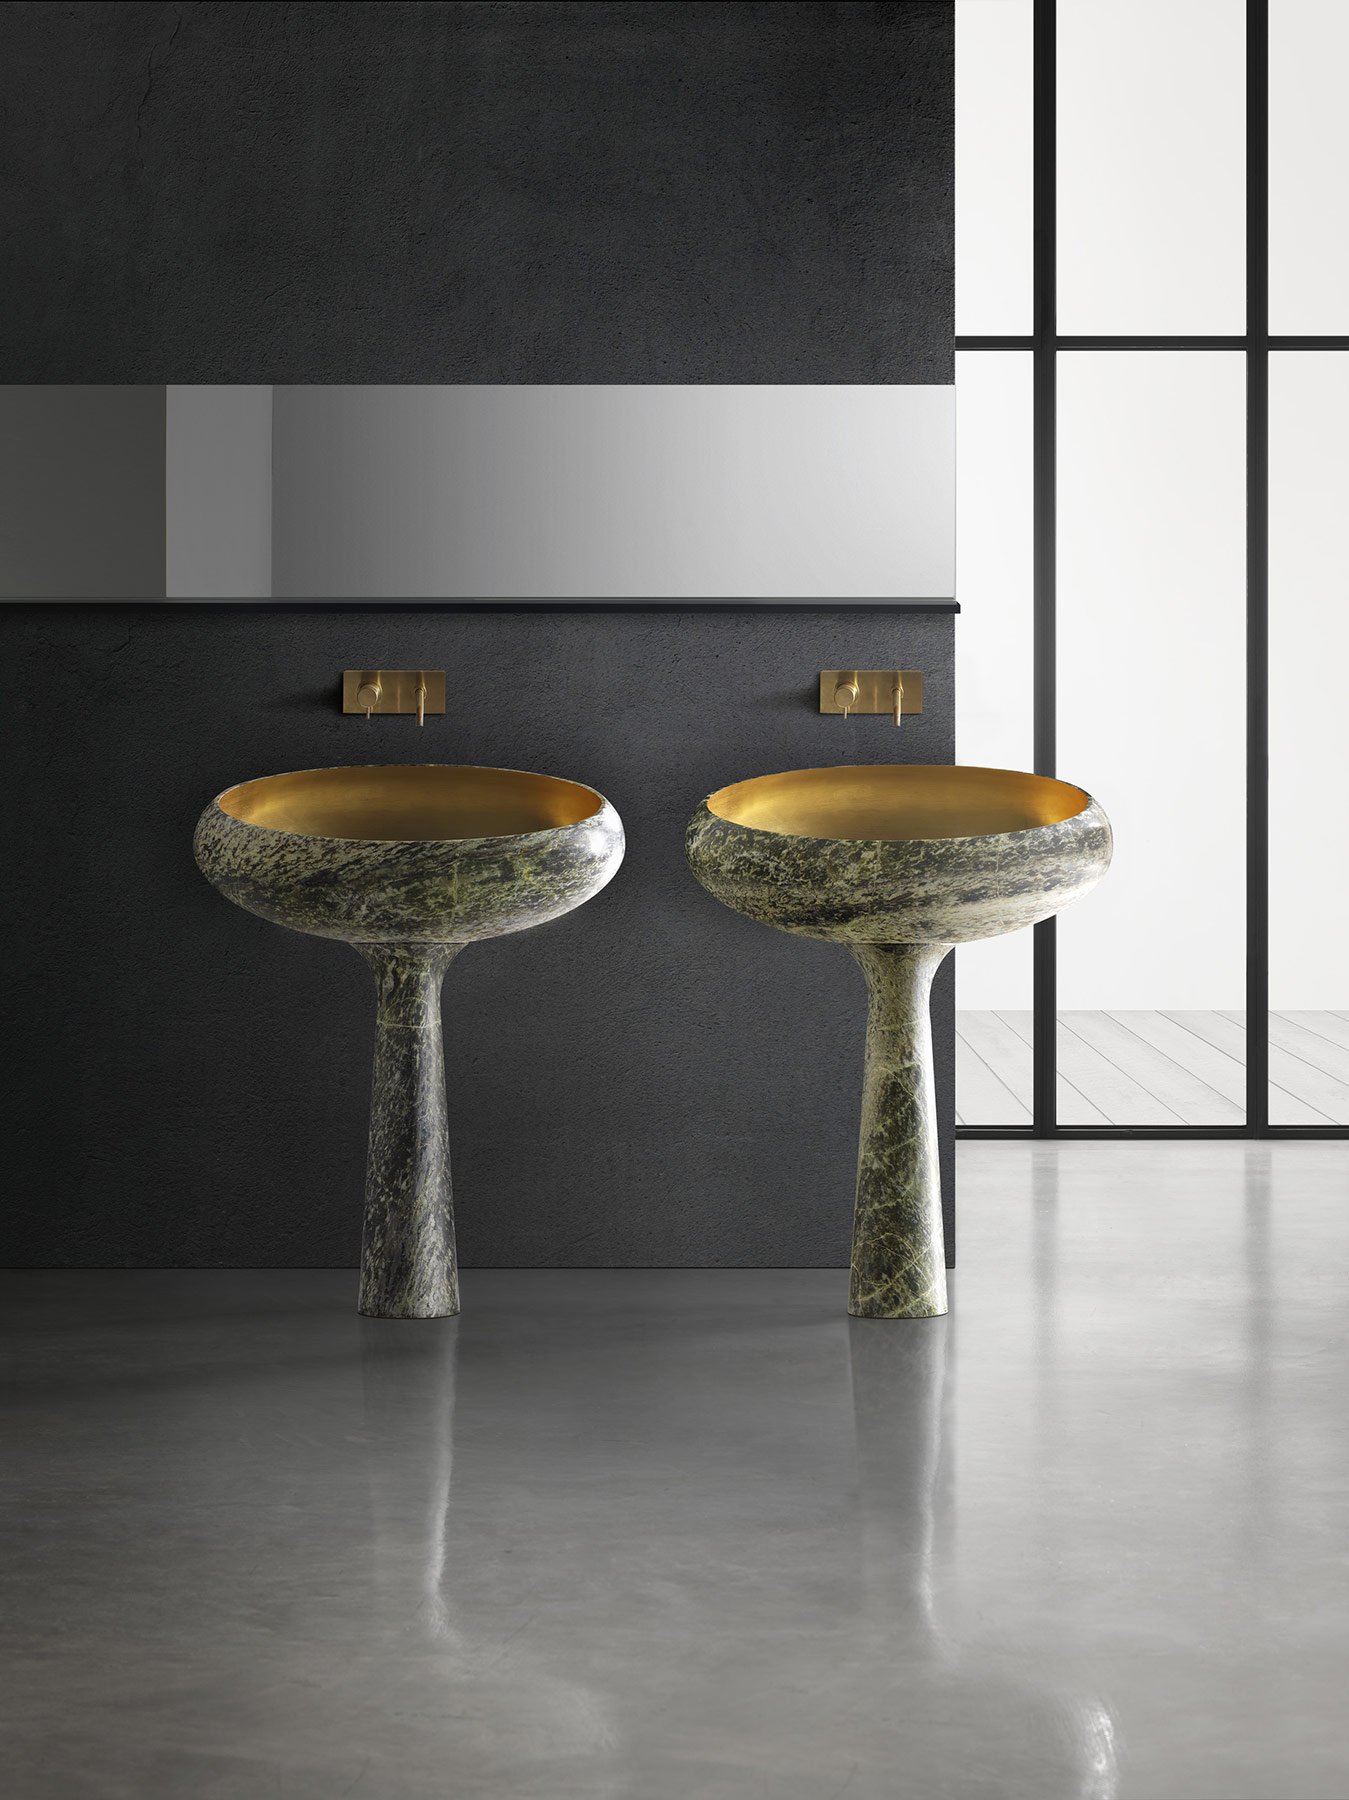 Transitional Gong Floor Mount Washbasin